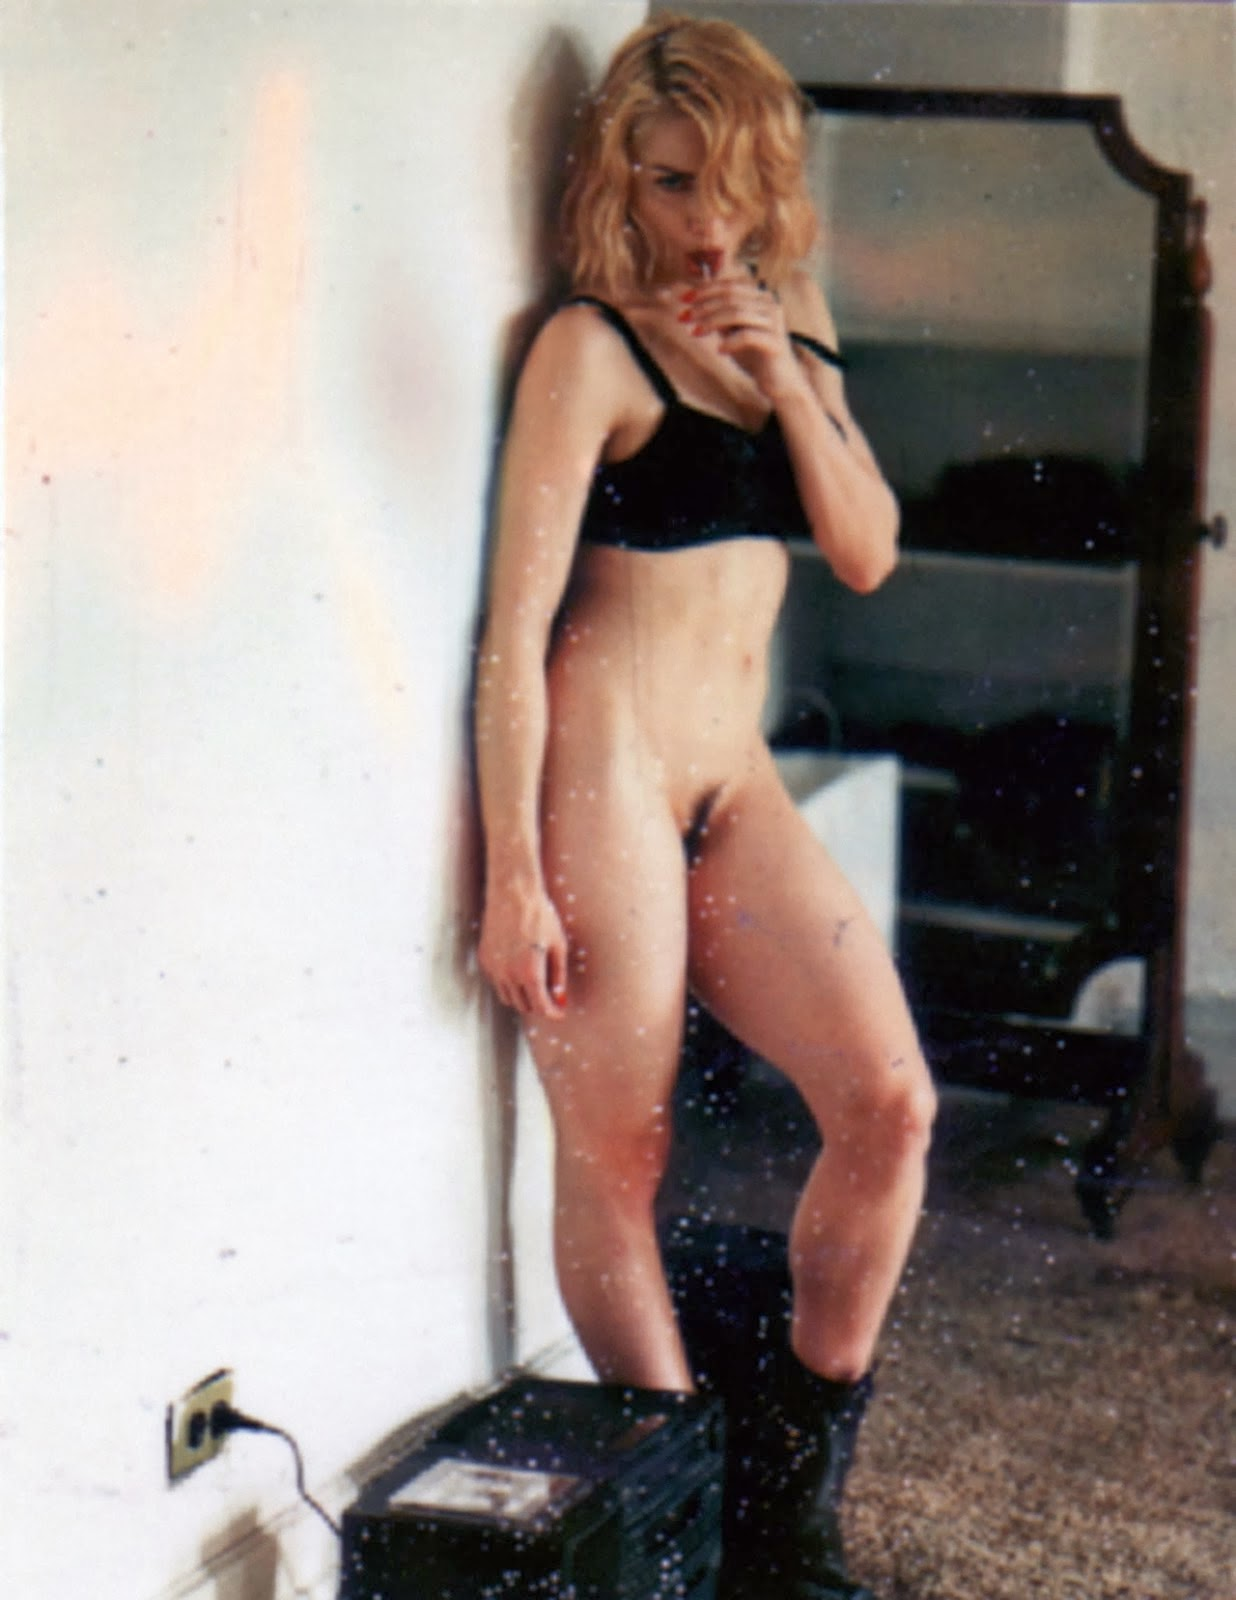 Madonna nude pics from her sex book, young girls with painted on clothes